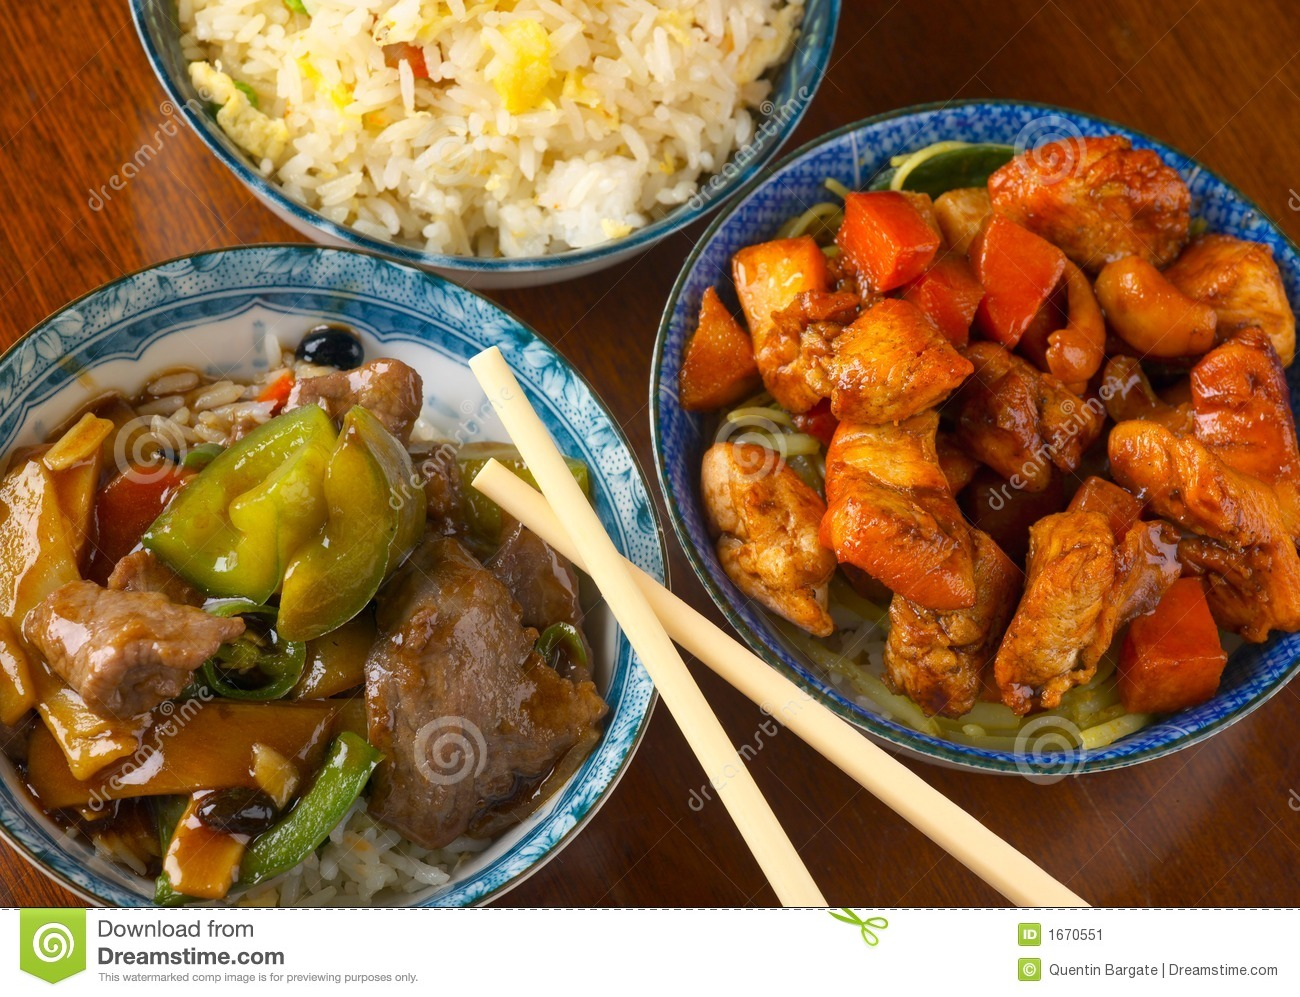 Delicious Chinese meal